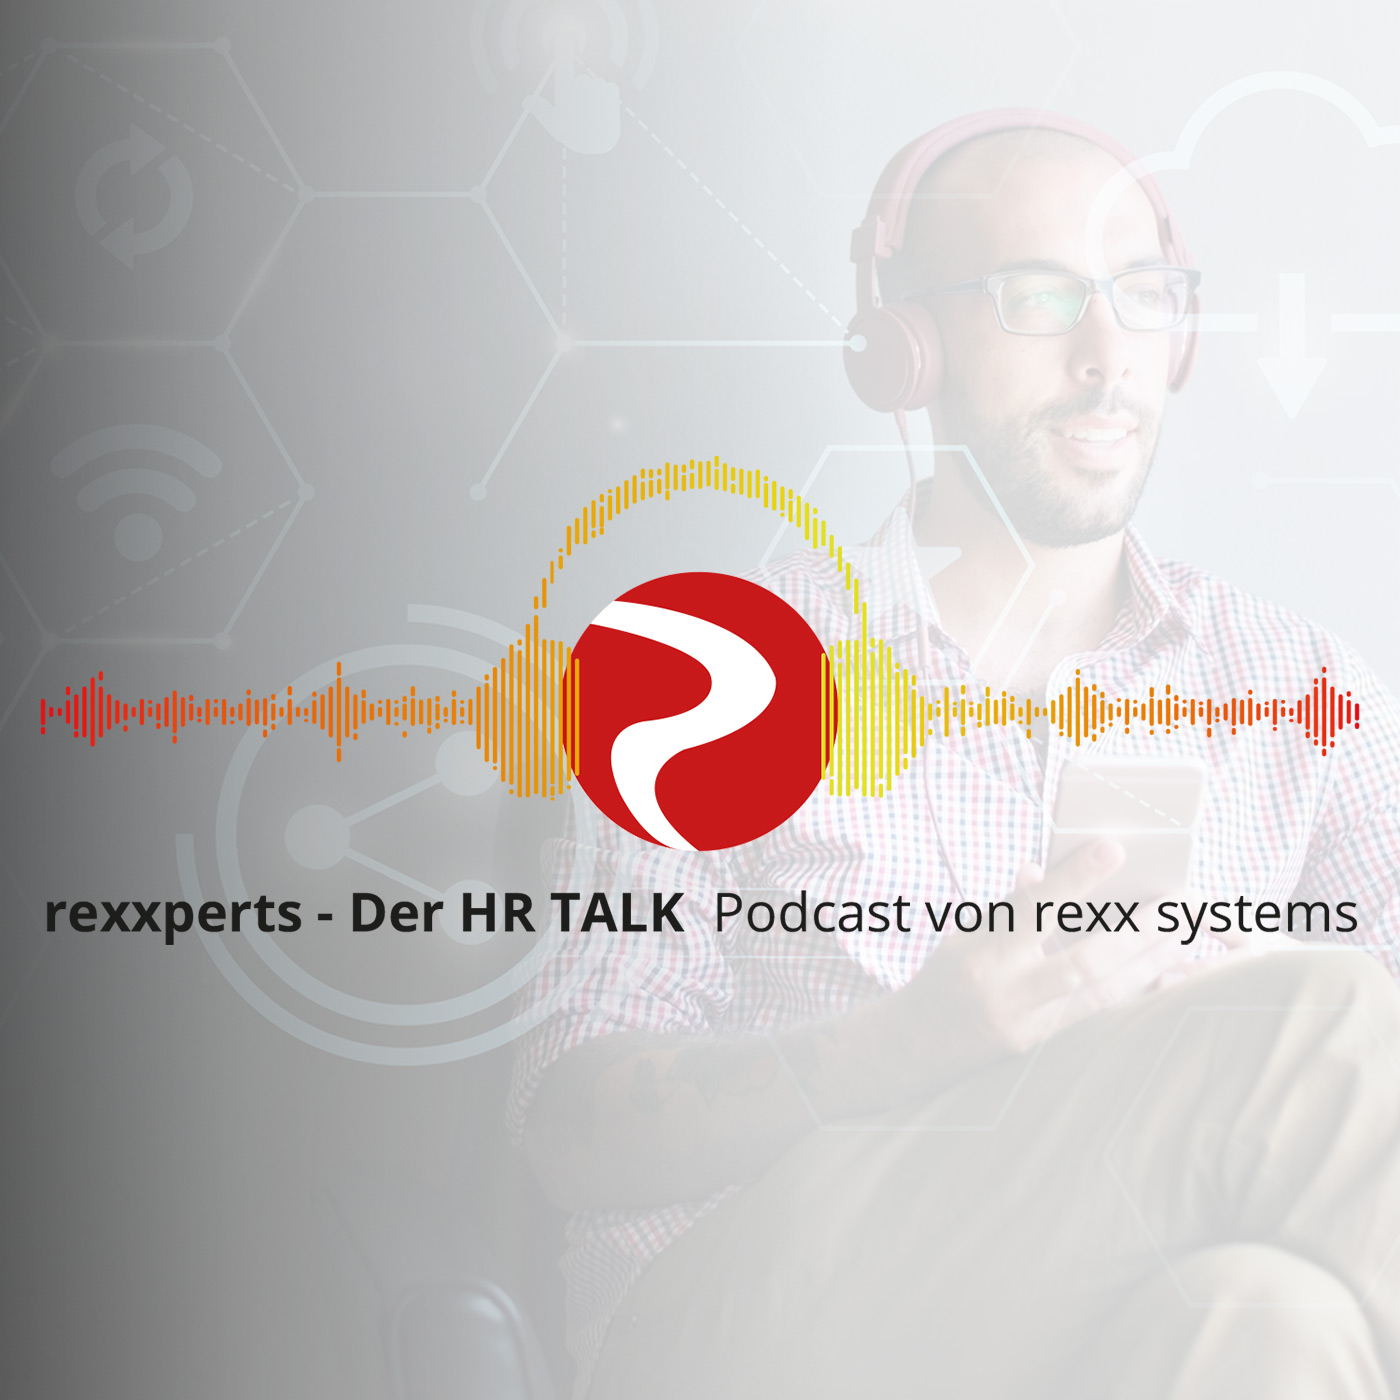 #7 rexxperts - Der HR TALK: Data Analytics / Data processing / Personalkennzahlen